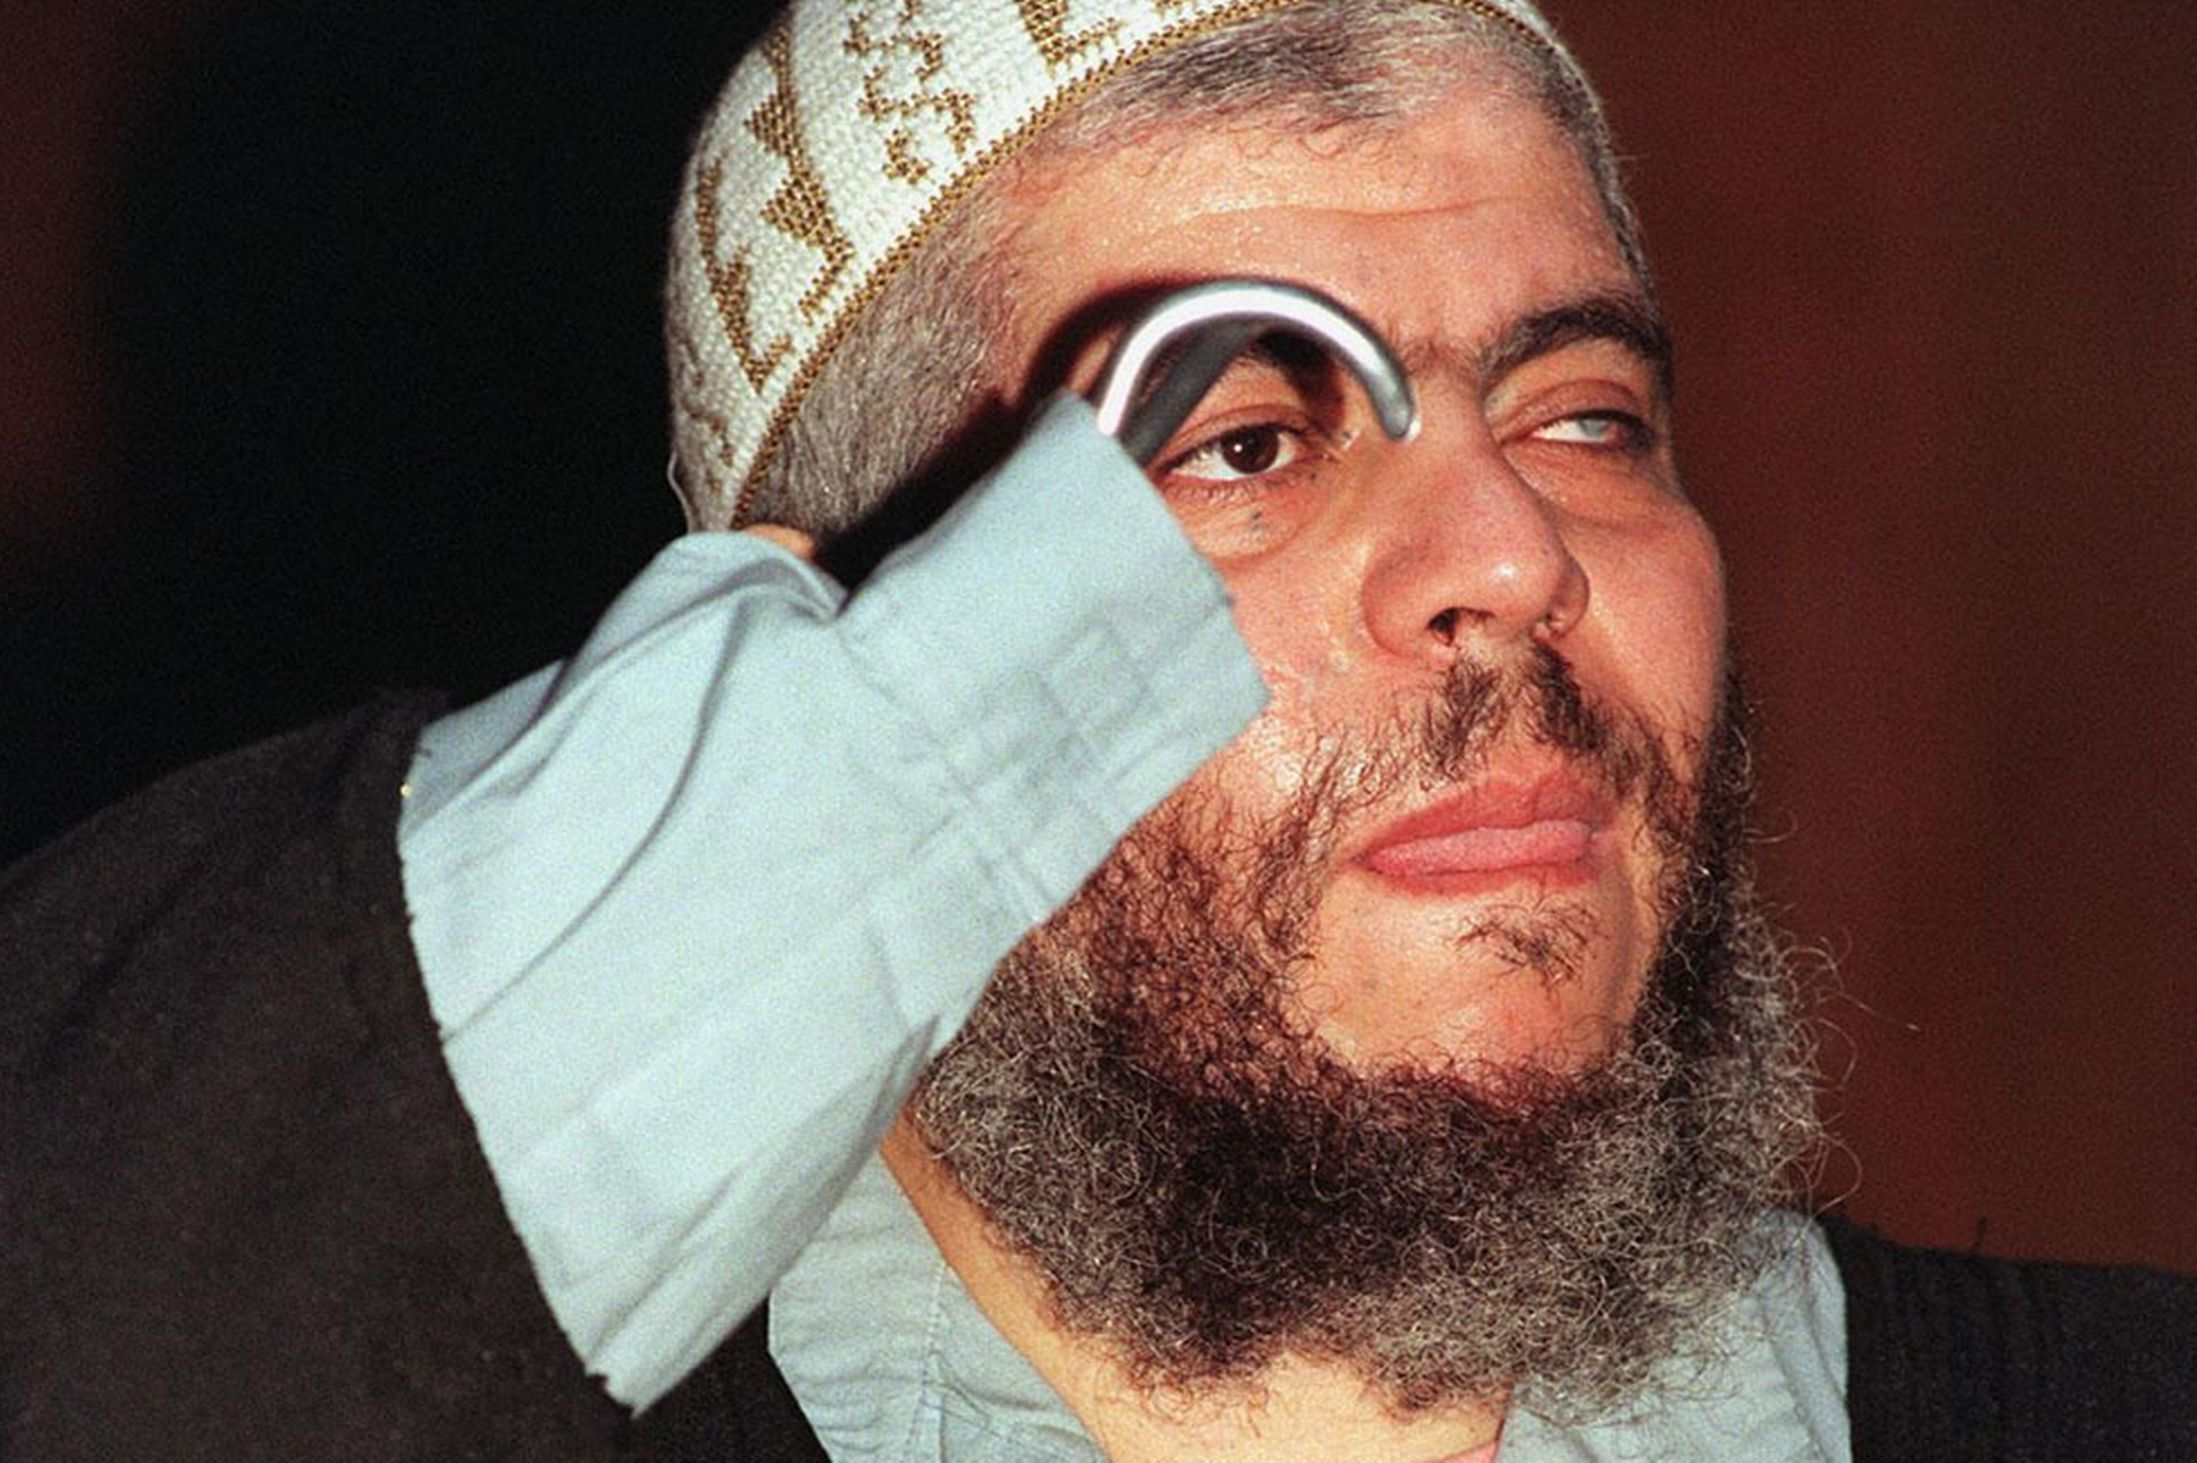 FUCK OFF YOU UGLY MUSLIM PARASITE